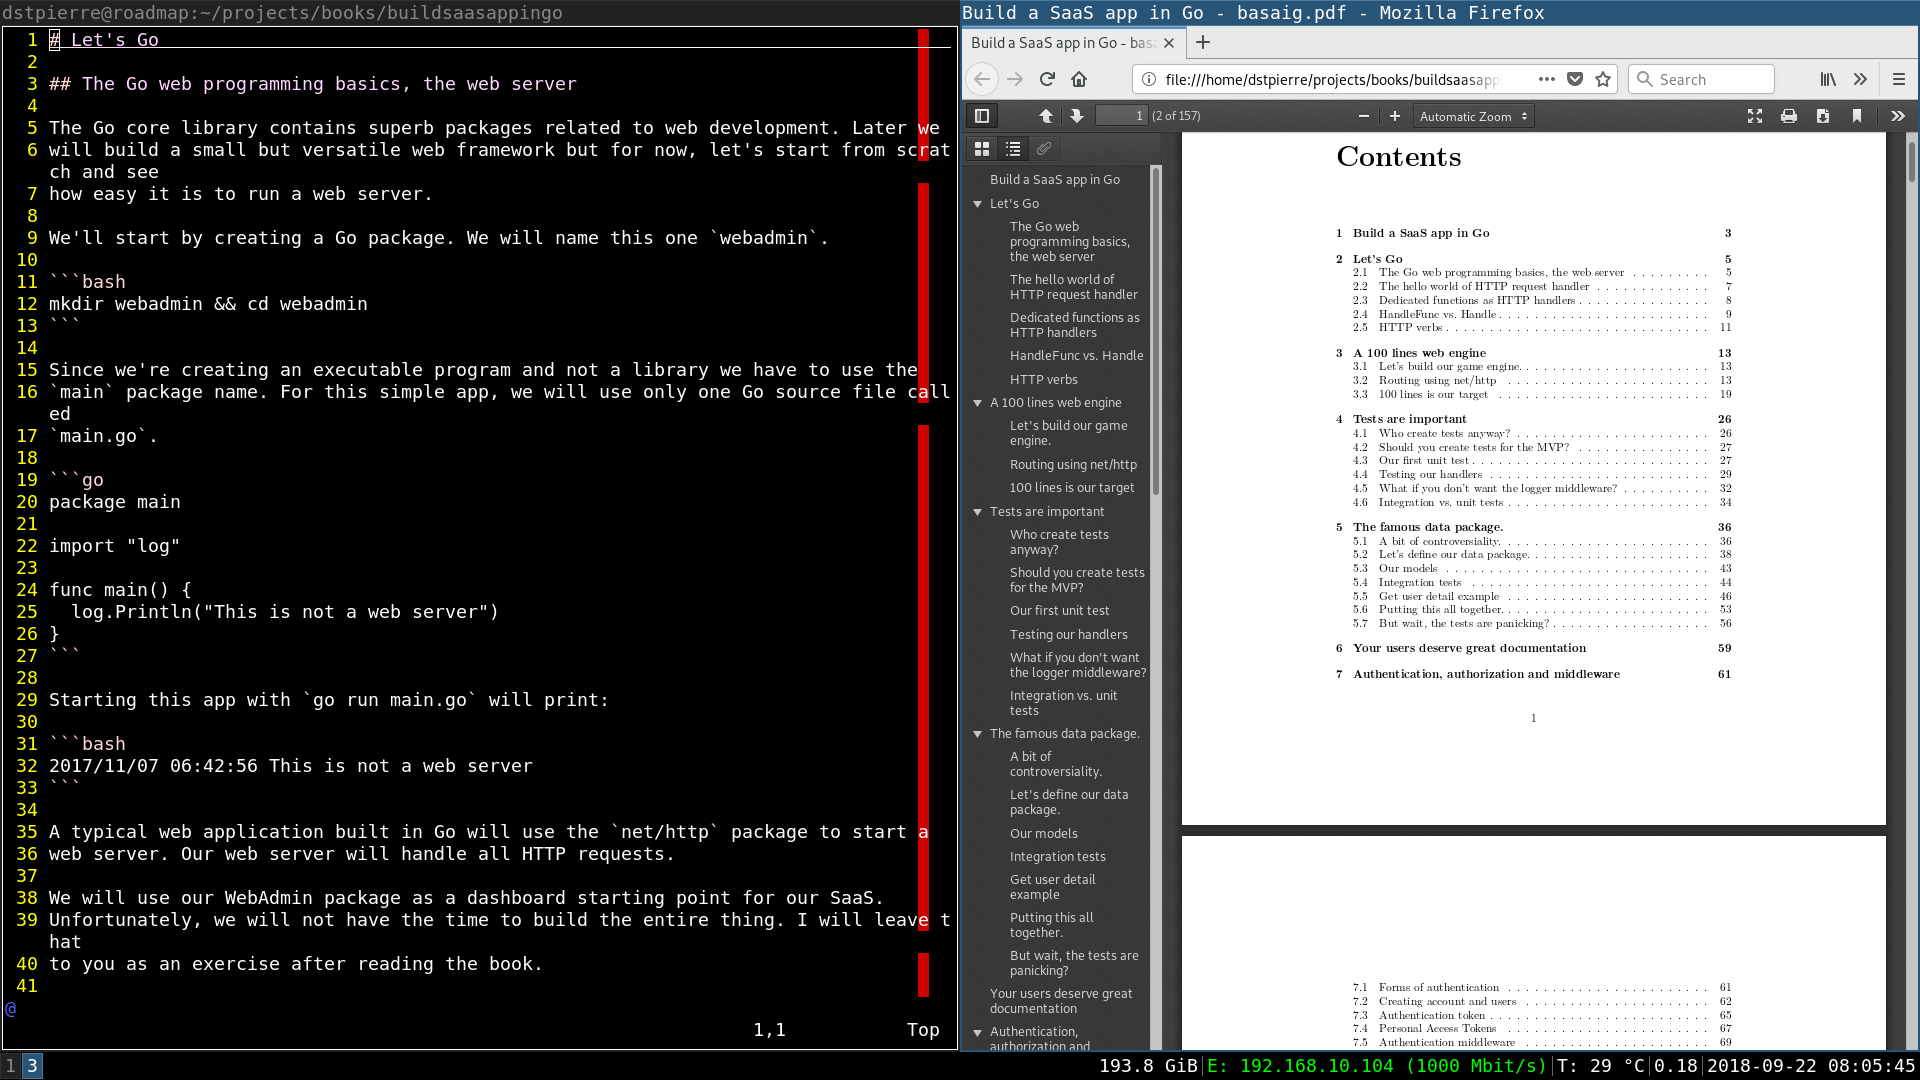 Showing a sample markdown file and the table of contents from the PDF.